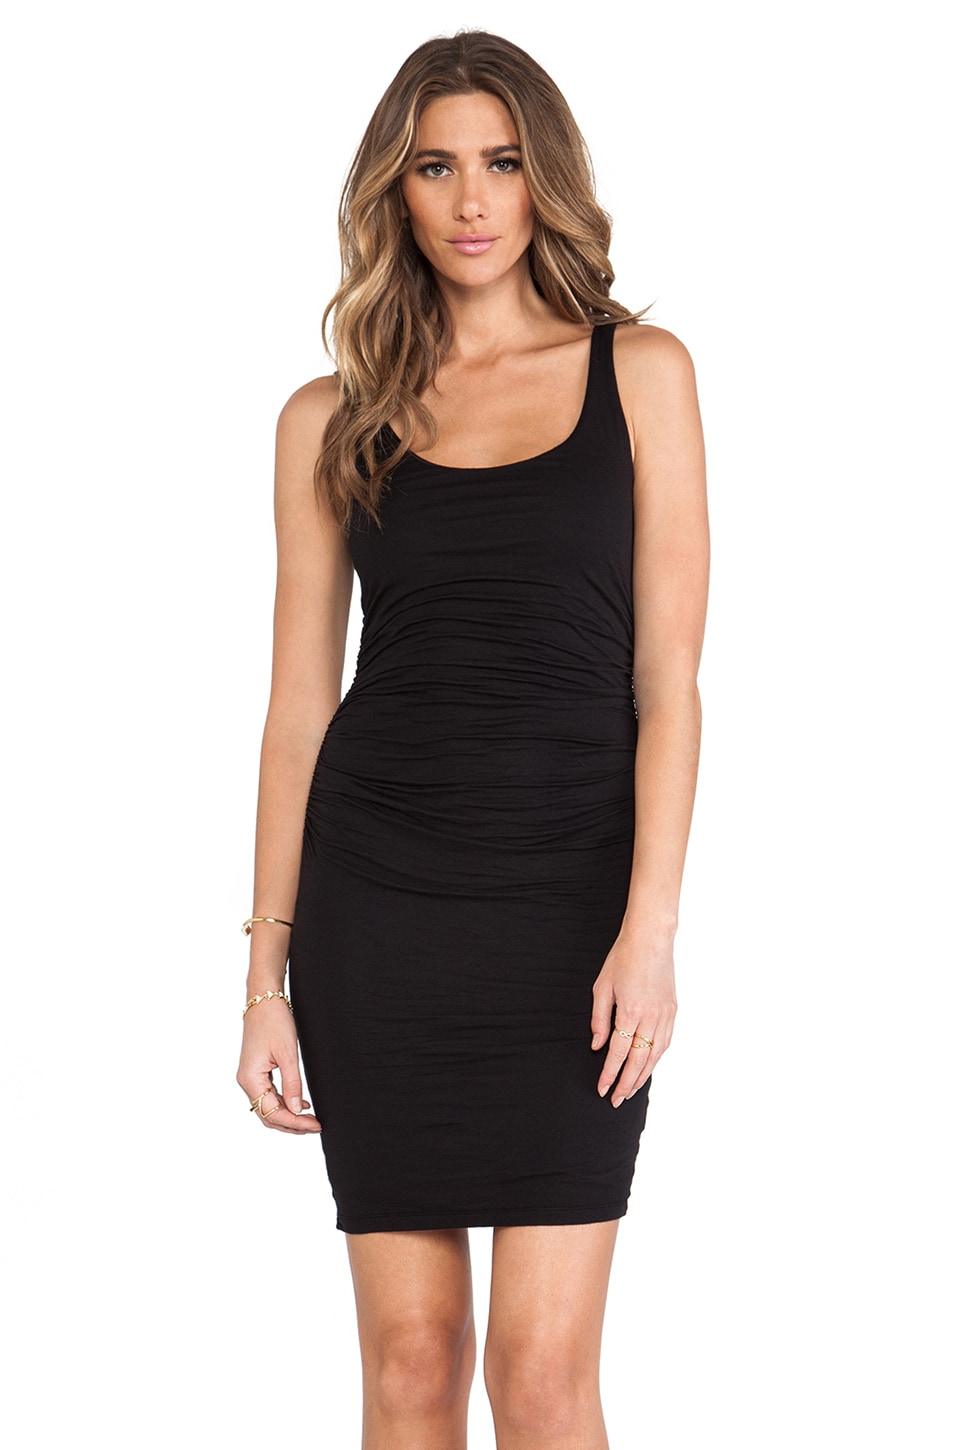 Velvet by Graham & Spencer Gauzy Whisper Melody Dress in Black